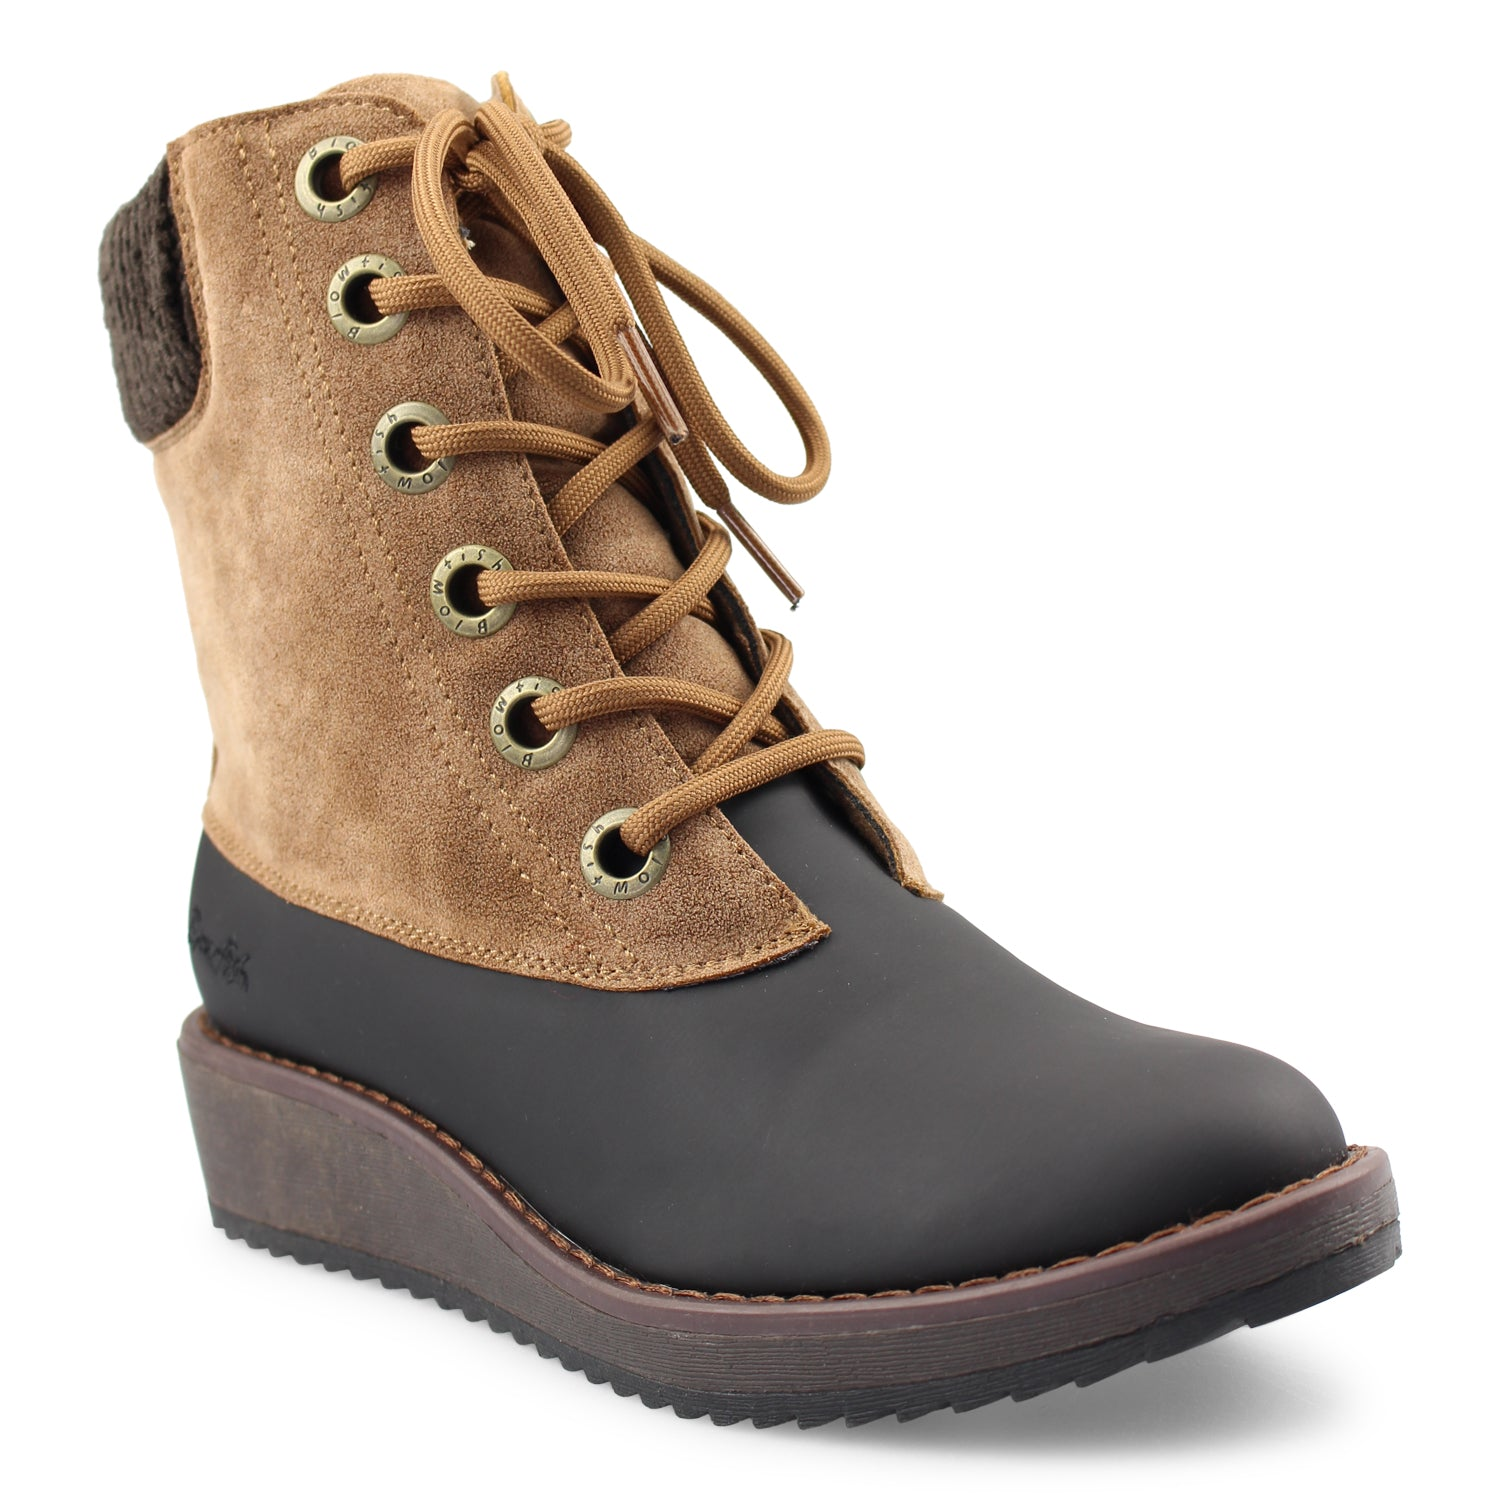 'Blowfish Malibu' BF-8181 223 - Women's Cabrillo Boot - Carmel